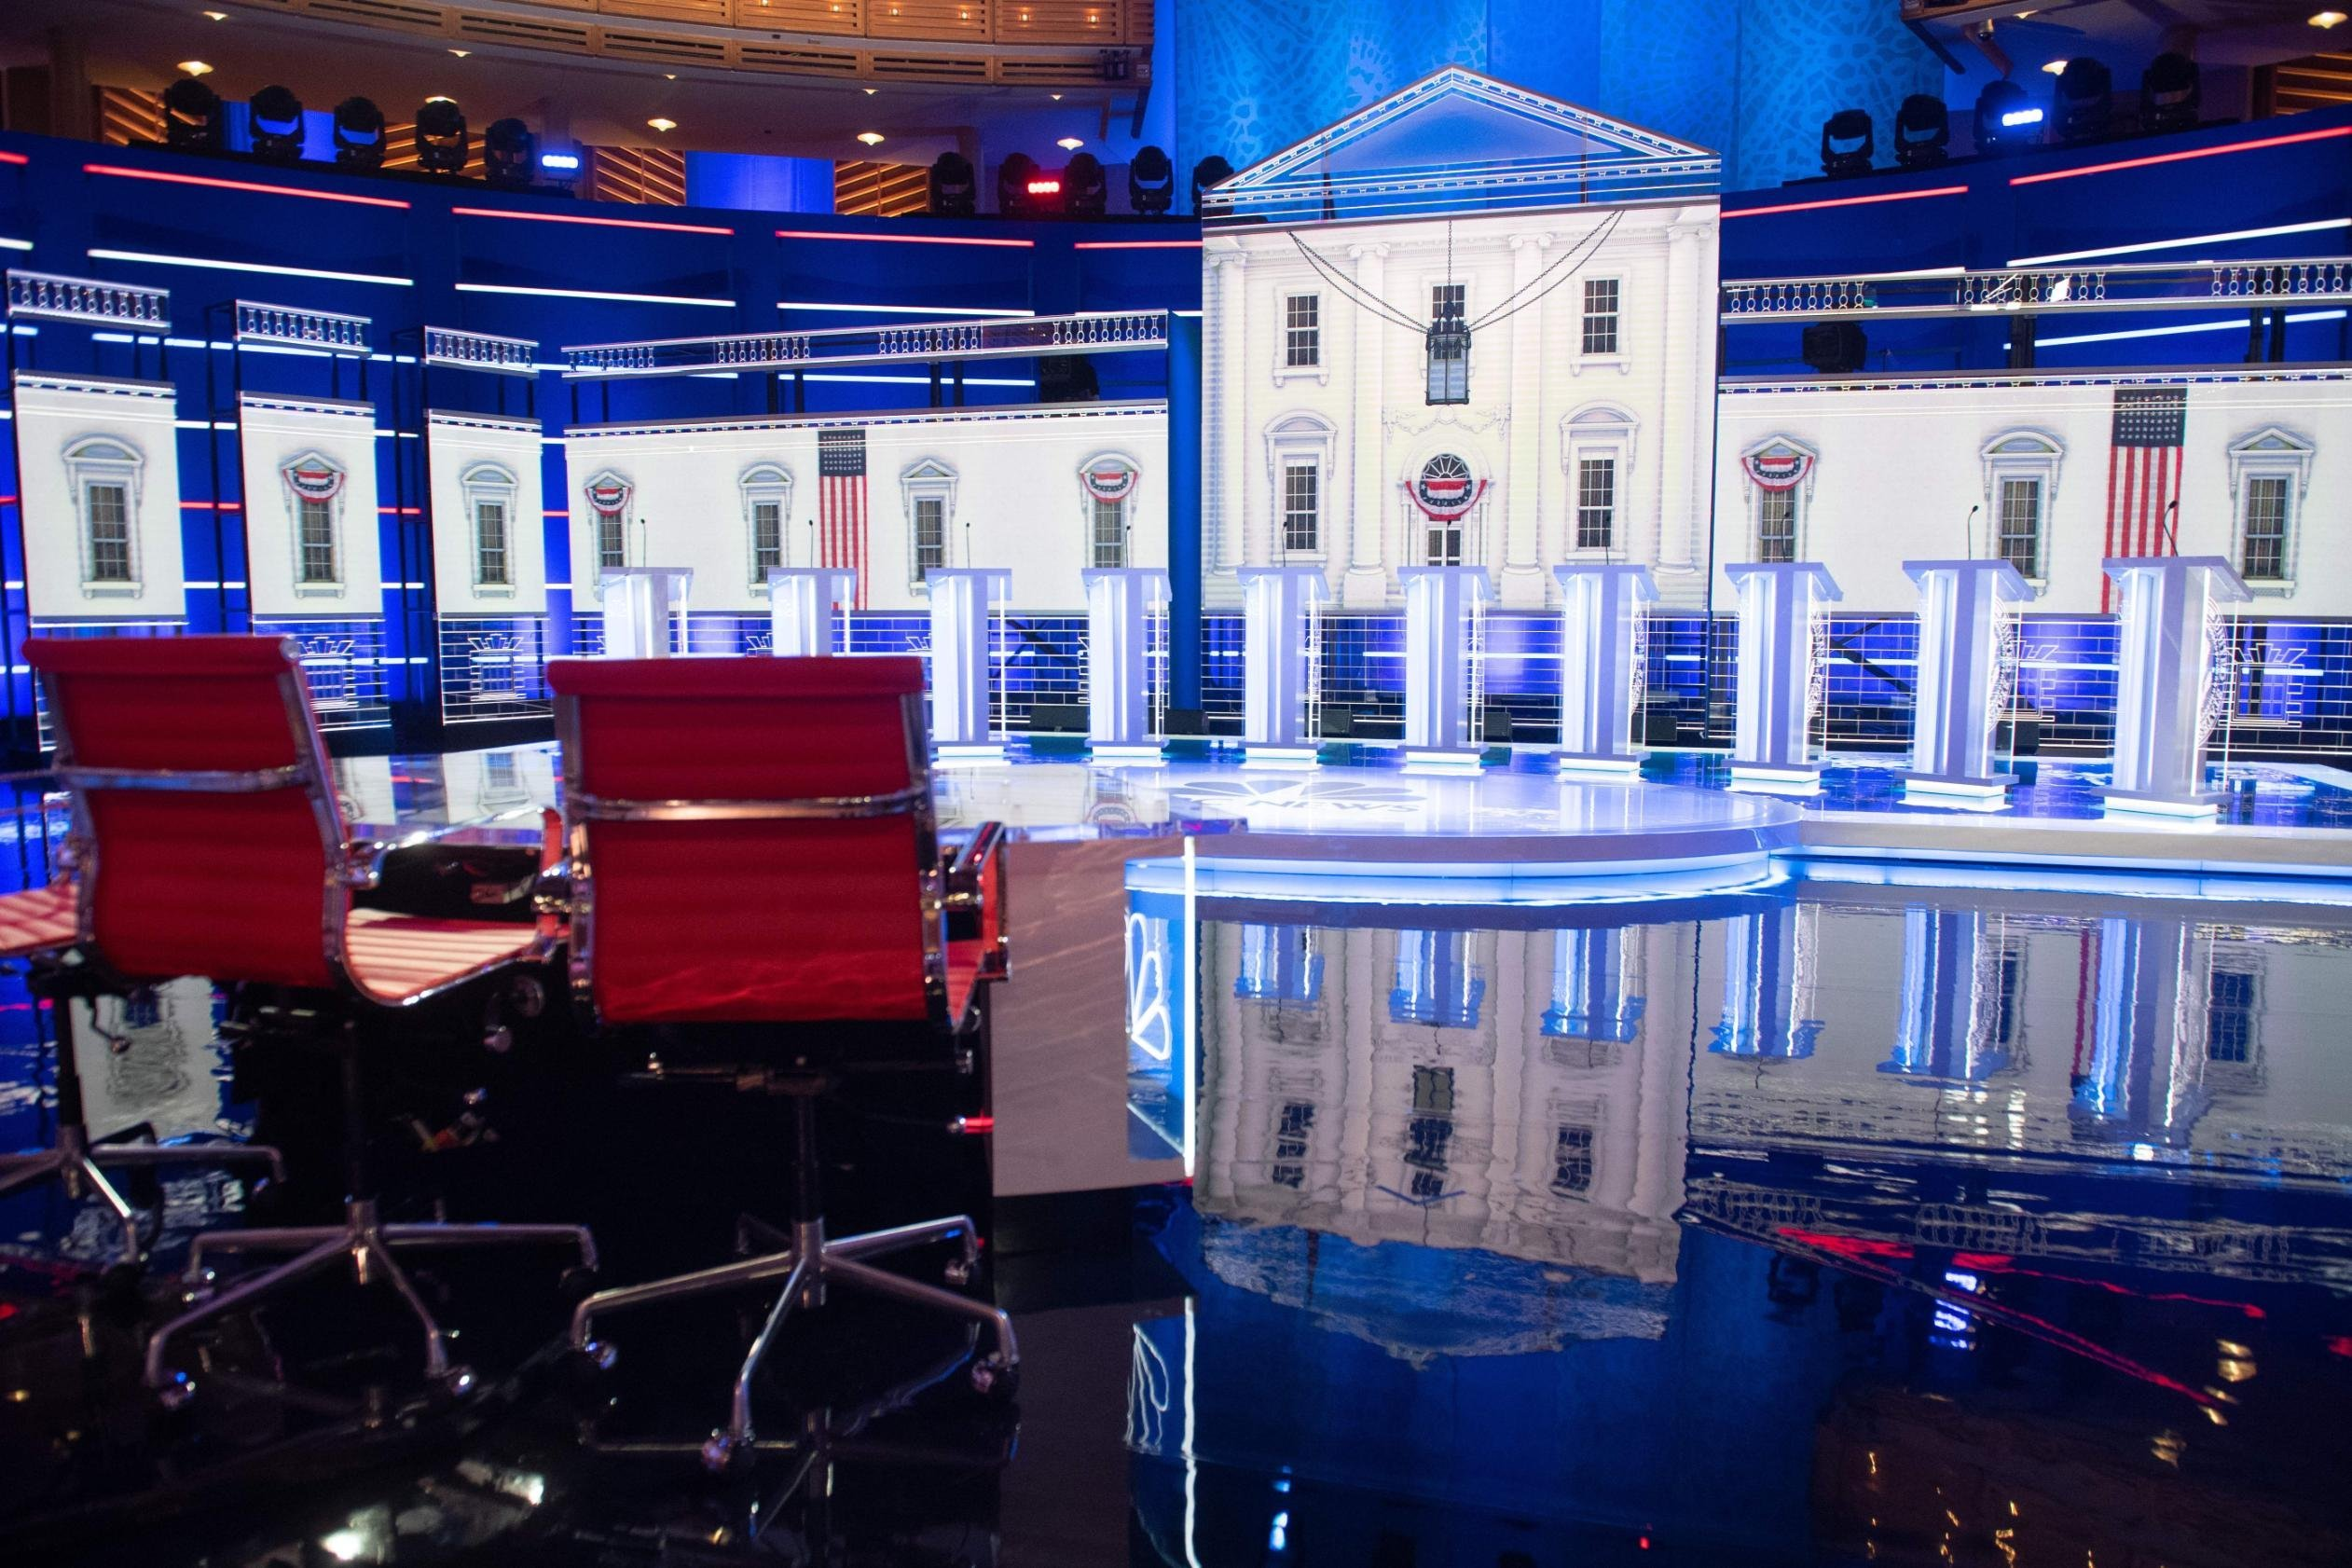 Our debate TV predictions: Can the Democrats score ratings points in the age of Trump?